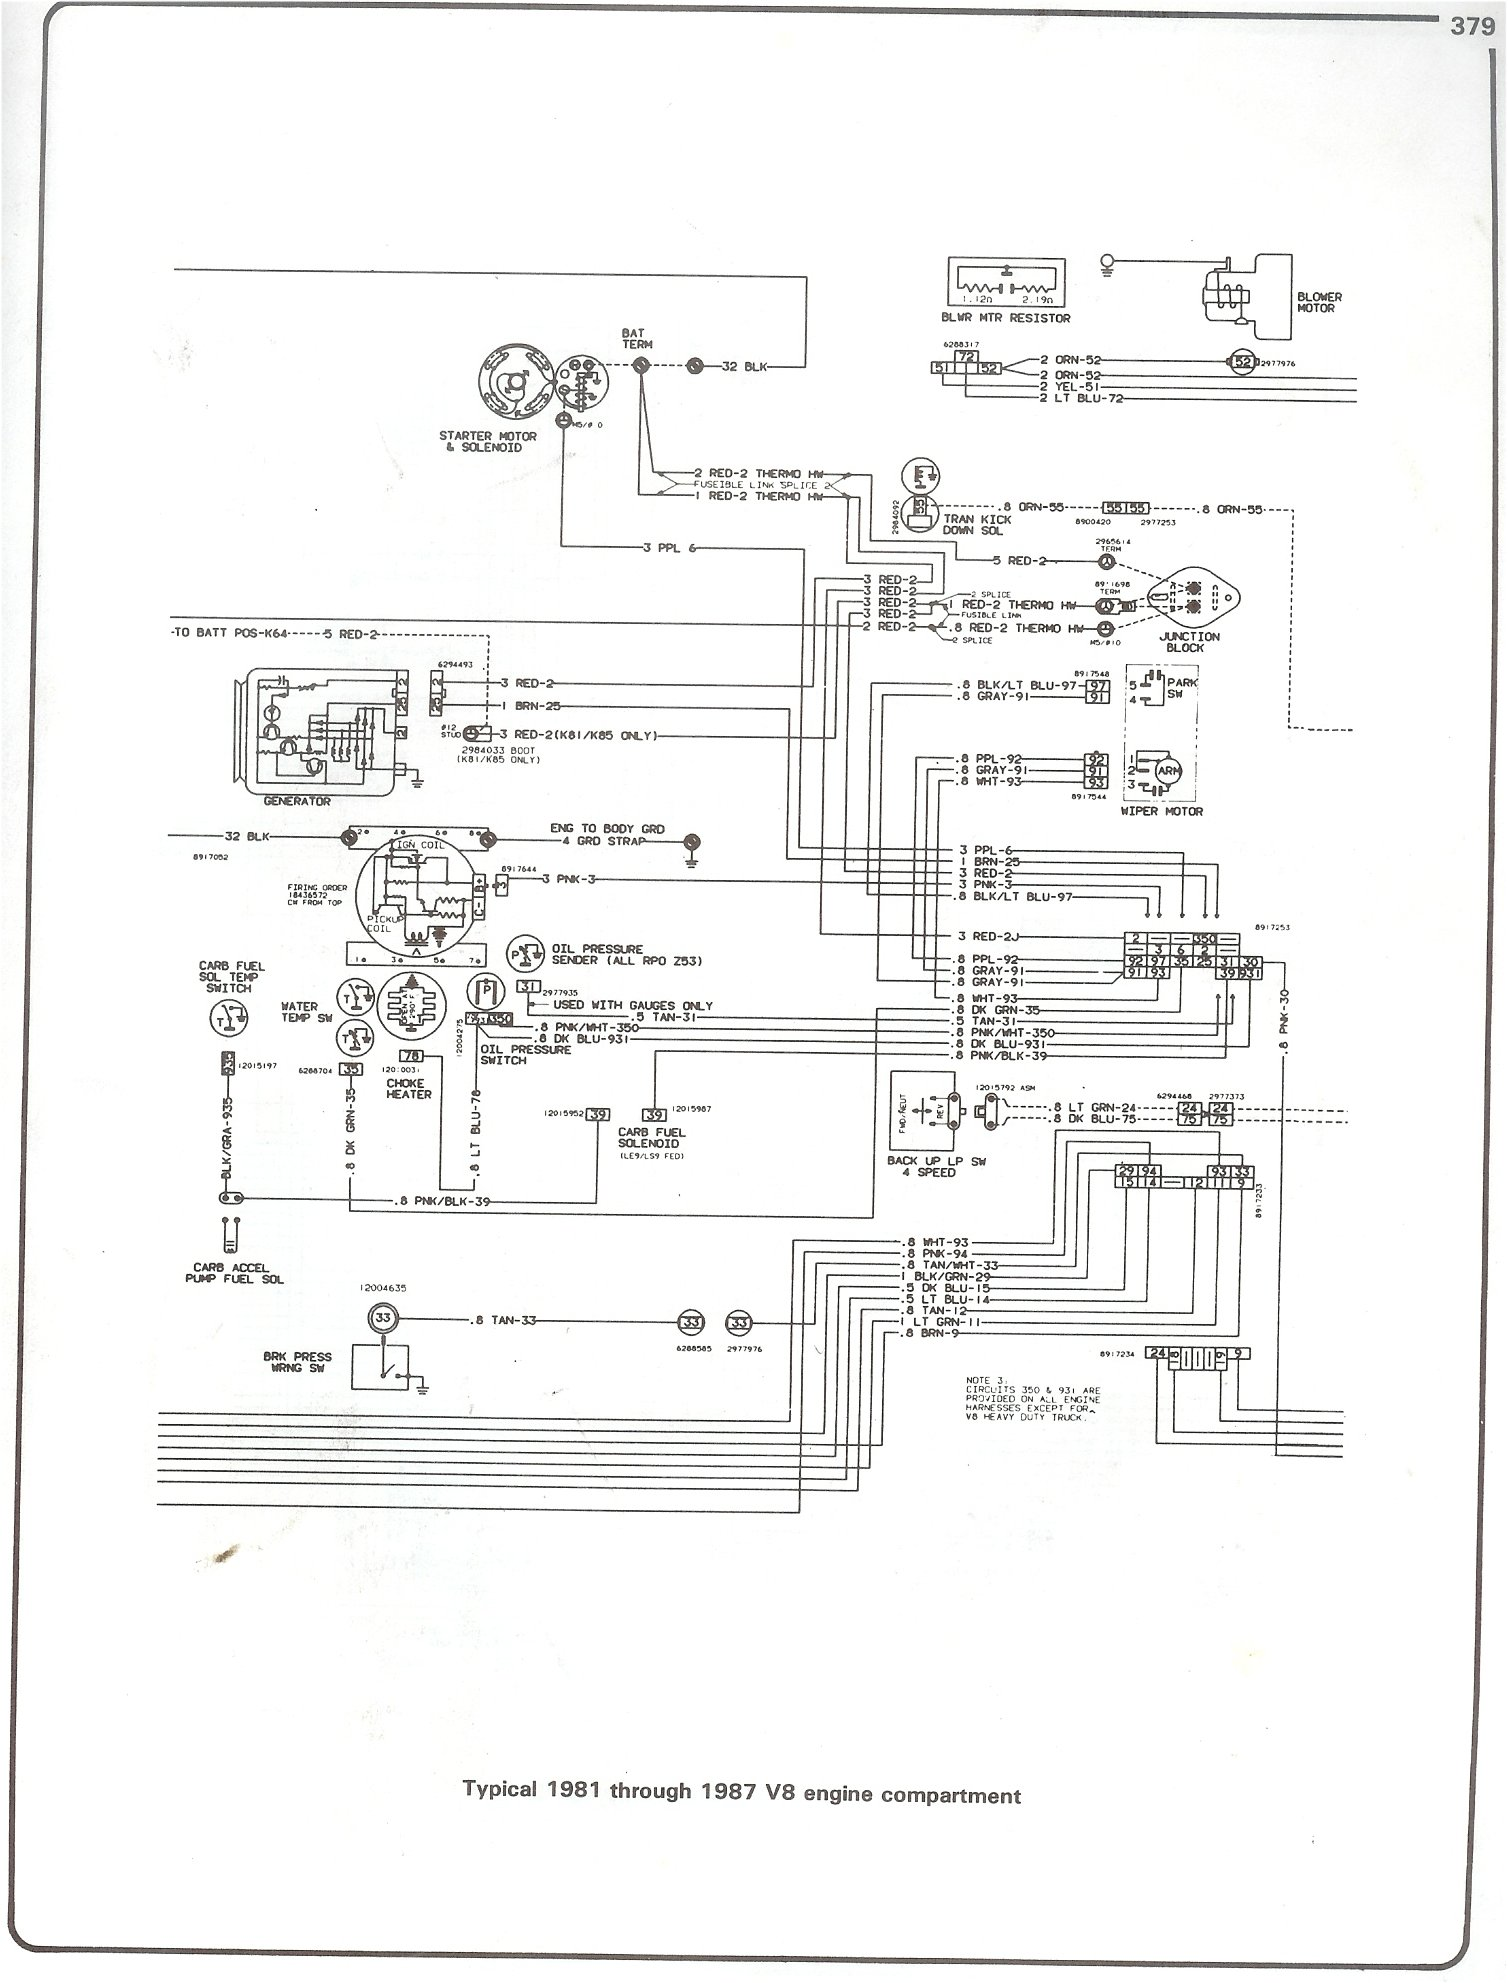 81 87_V8_engine complete 73 87 wiring diagrams 1979 c10 wiring diagram at bayanpartner.co